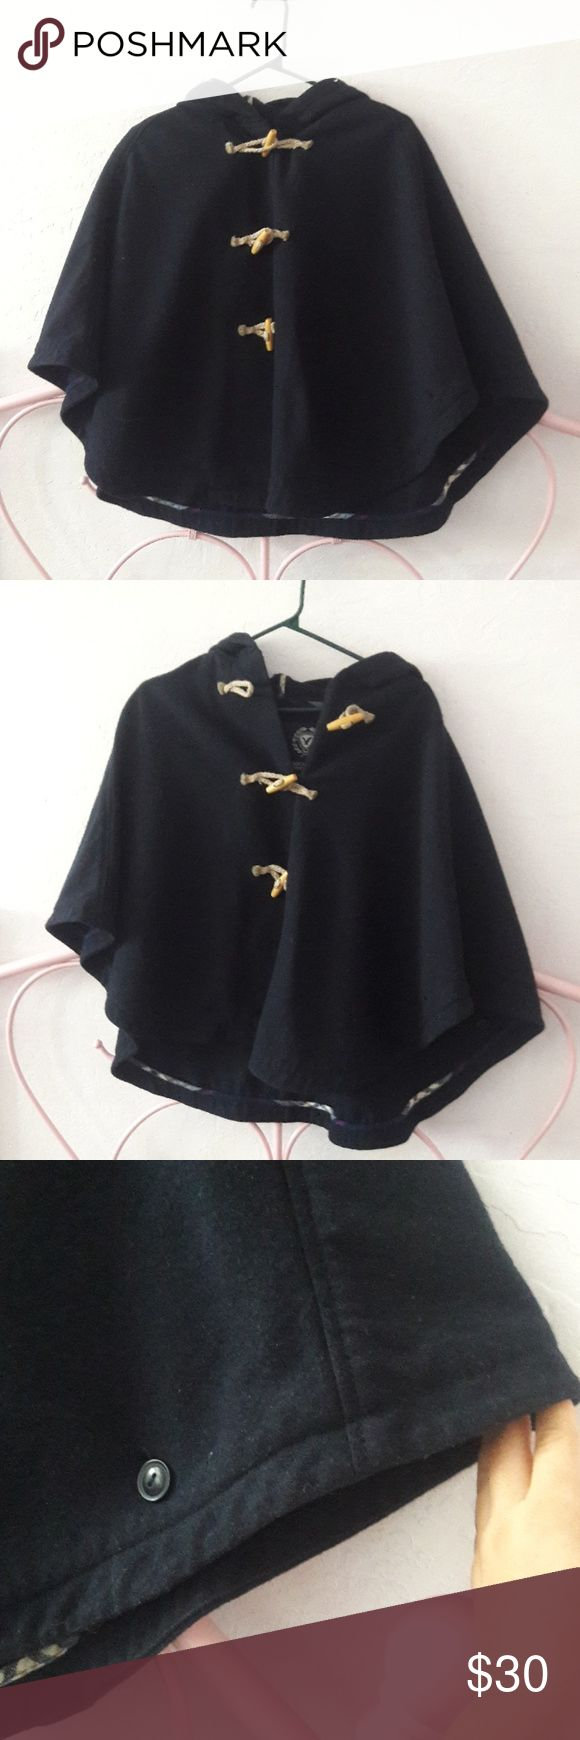 Navy blue cape jacket Navy blue cape jacket. Has a hood, and can be buttoned to have sleeves American Eagle Outfitters Jackets & Coats